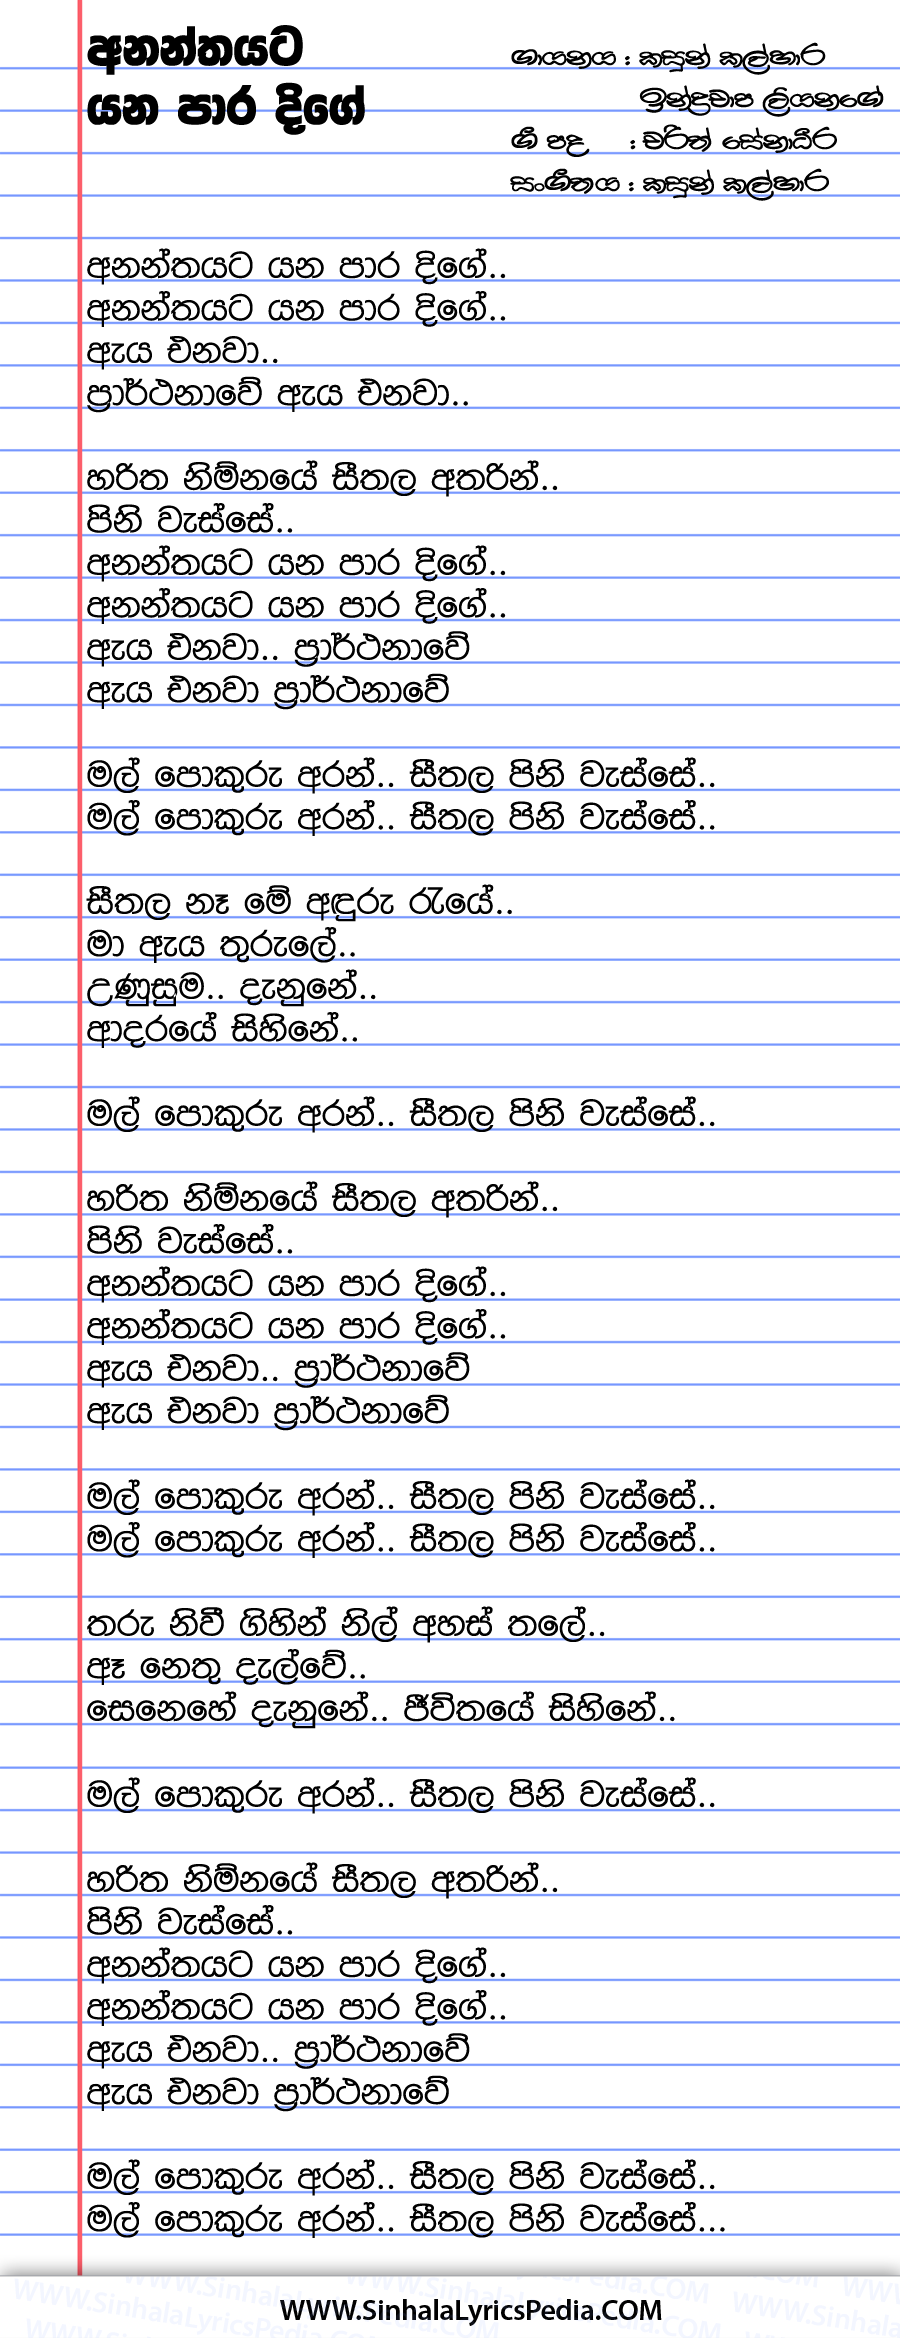 Ananthayata Yana Paara Dige Song Lyrics